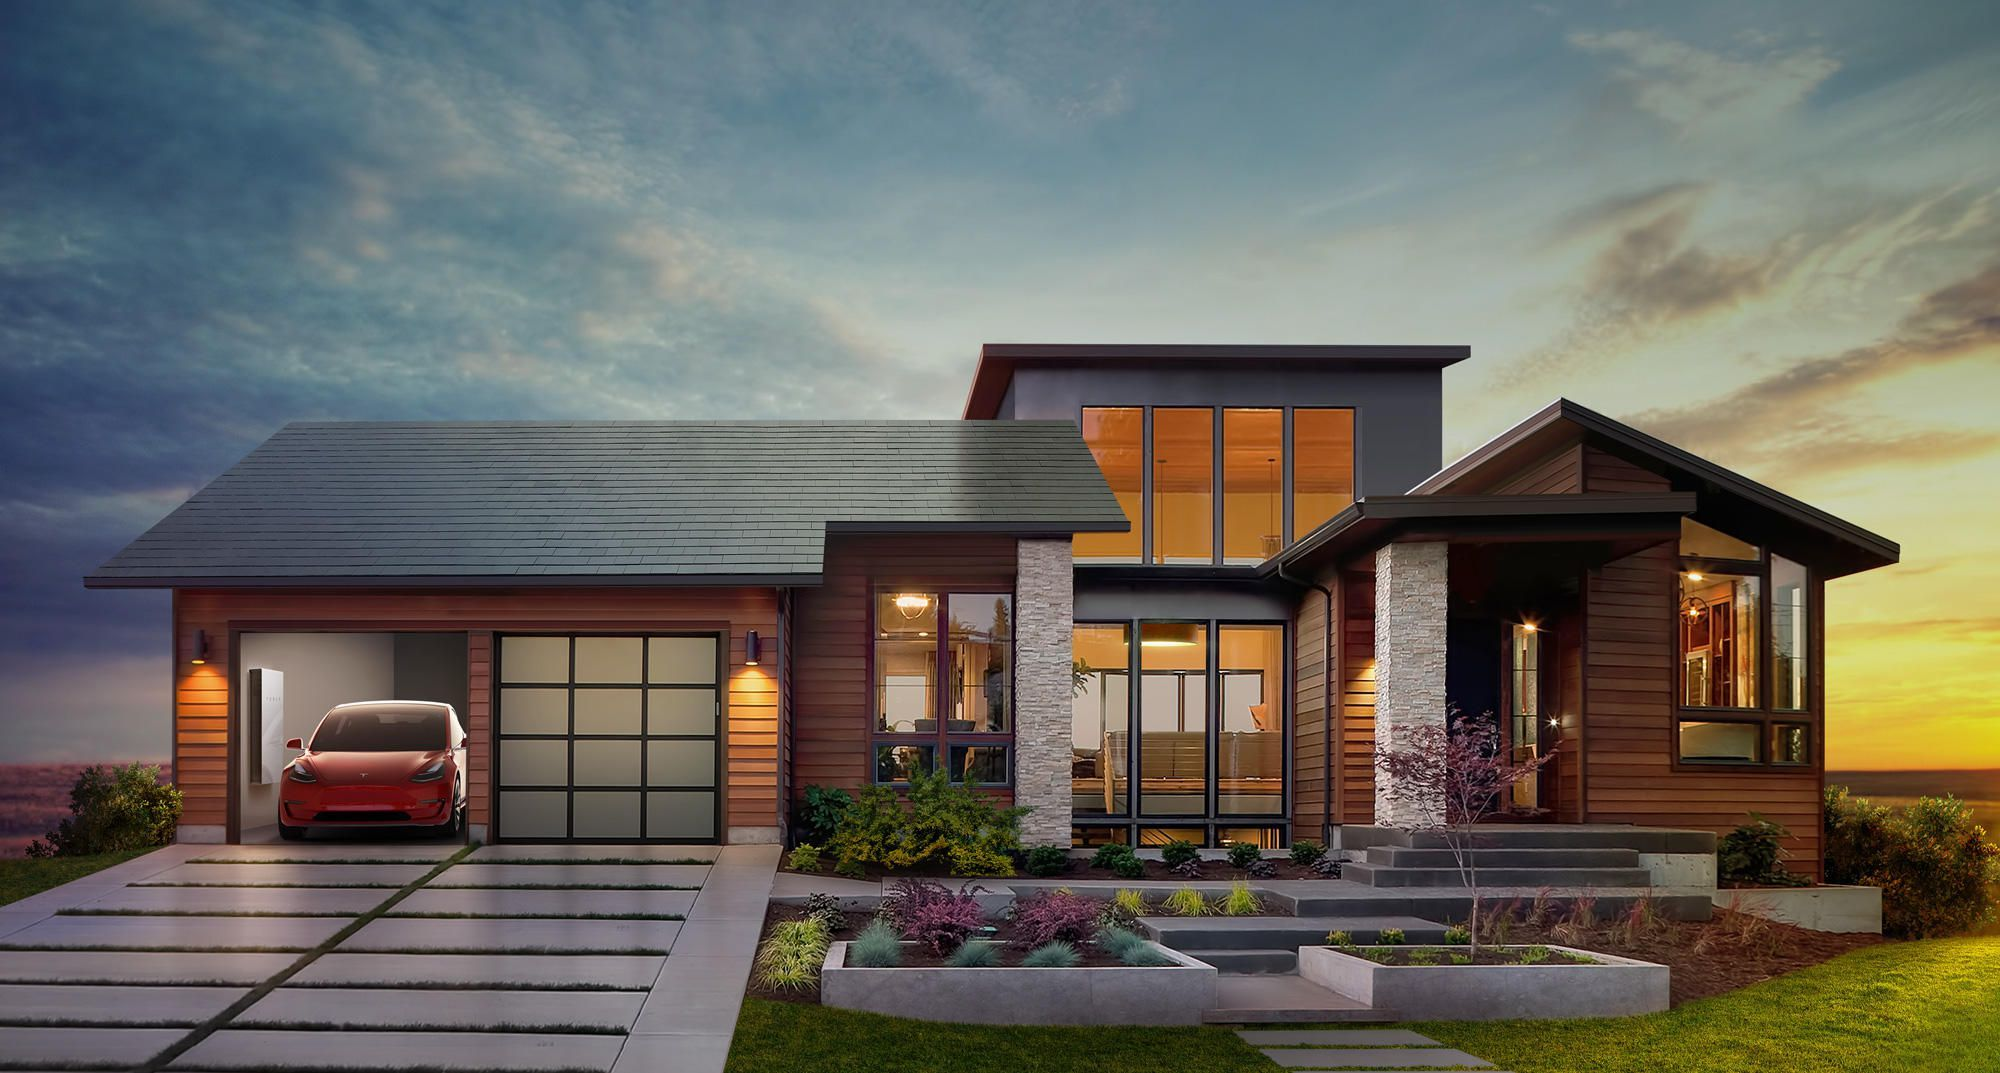 Tesla S Solar Roof V3 Is Here But Will You Want One For Your House Roadshow In 2020 Solar Roof Shingles Solar Roof Tesla Solar Roof